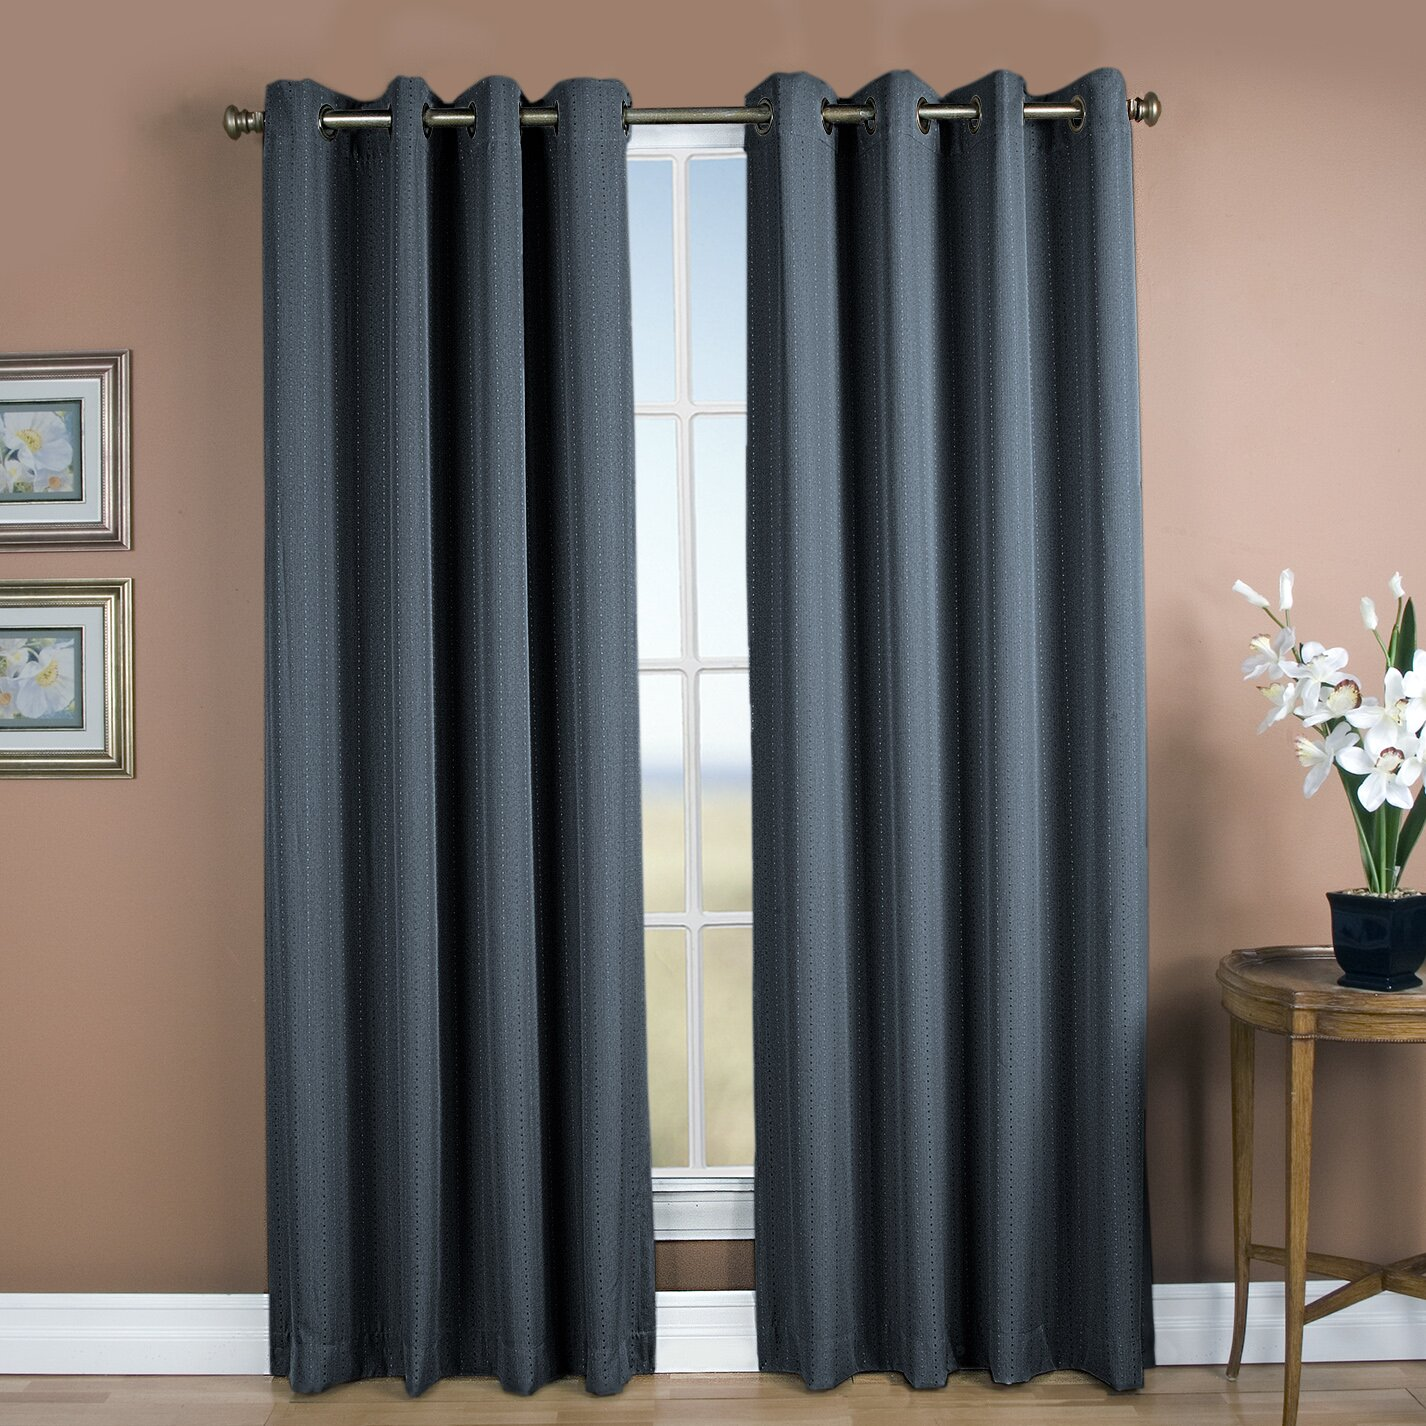 brayden studio louie grommet single curtain panel